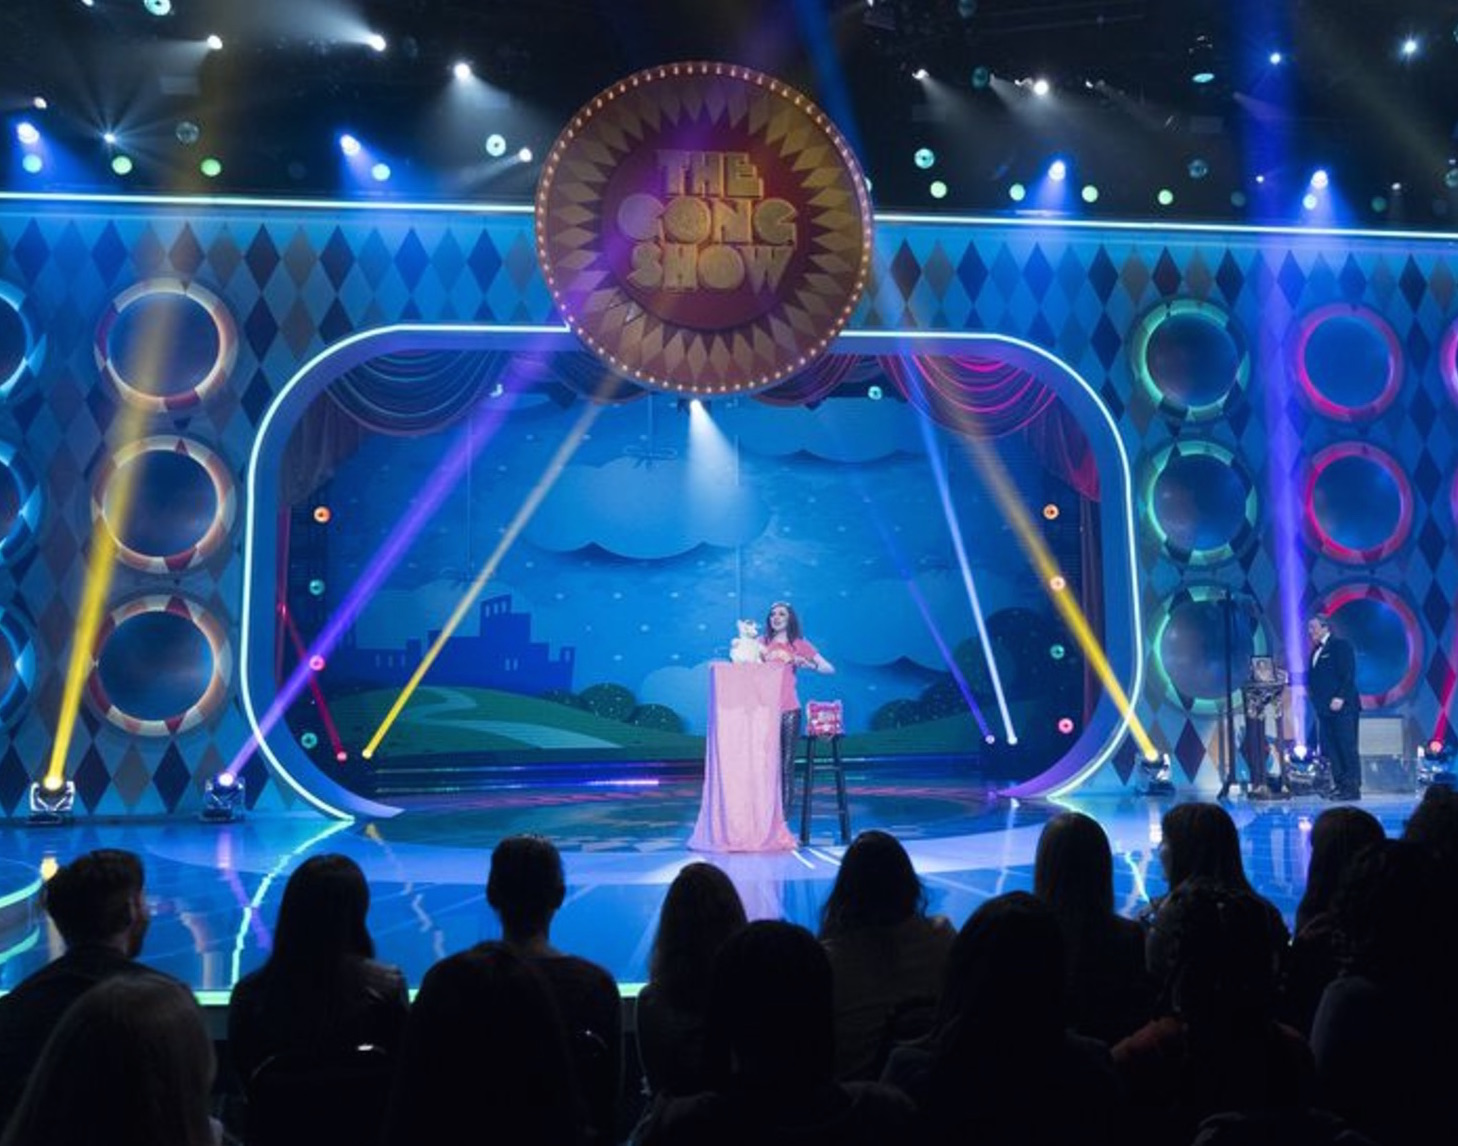 9/06/17  - We're so excited to watch our television debut on the Gong Show. September 7th on ABC!